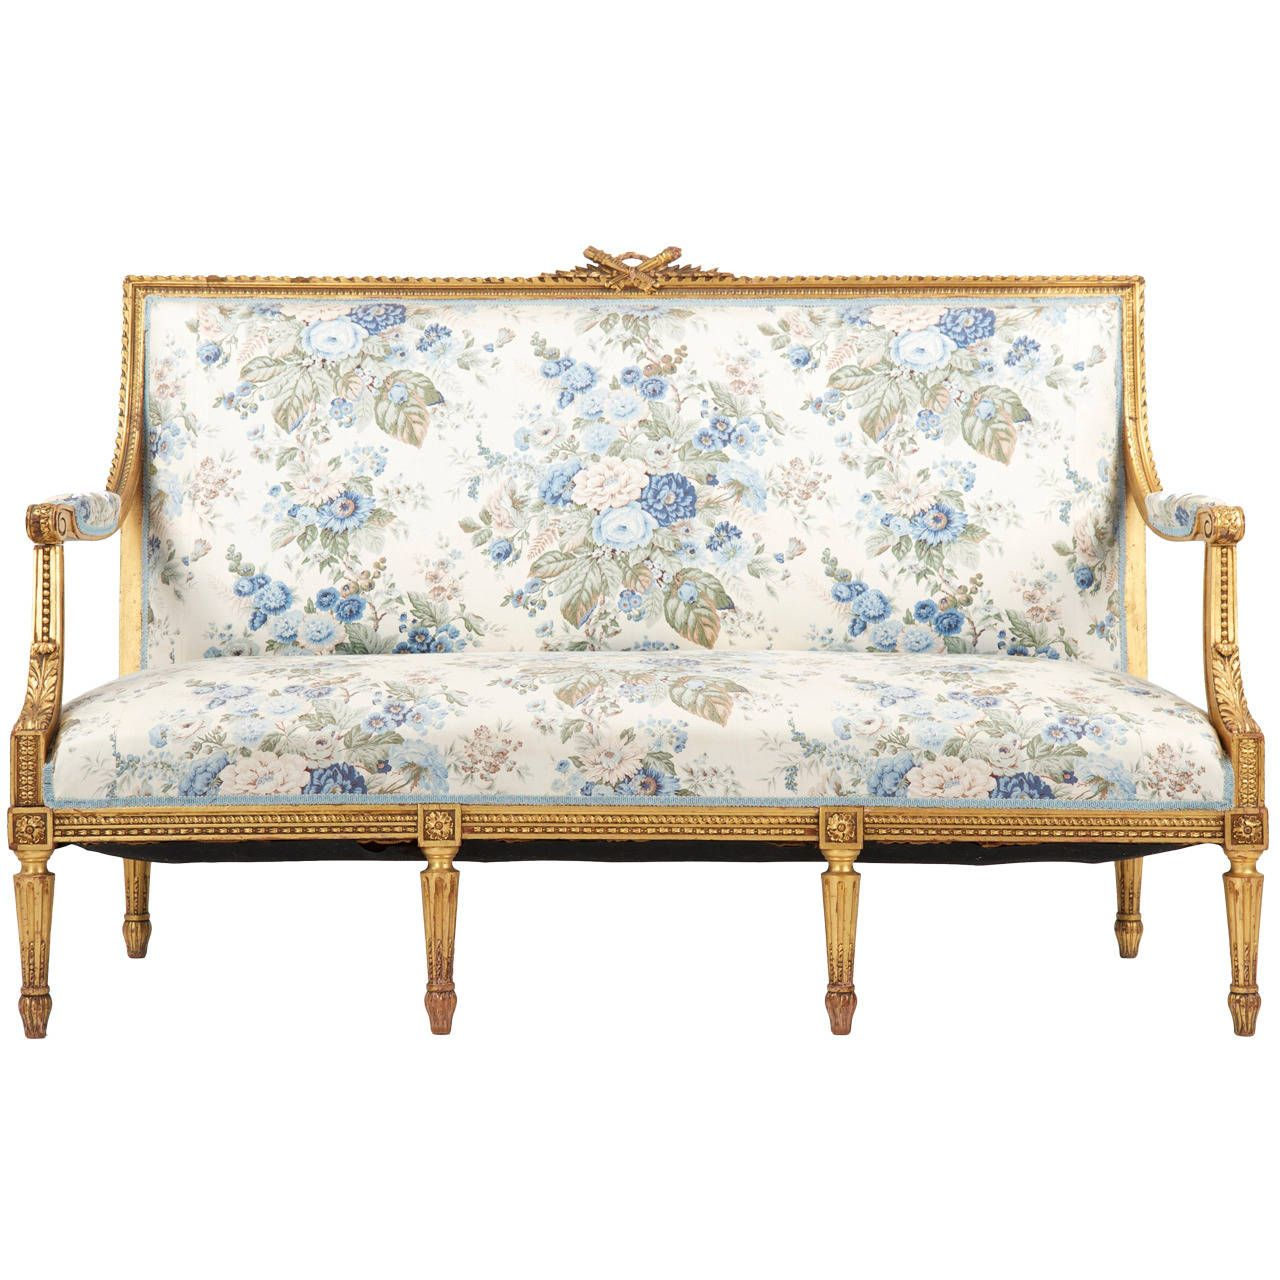 french louis xvi style giltwood antique settee sofa canape c 1900 settee sofa canapes and. Black Bedroom Furniture Sets. Home Design Ideas